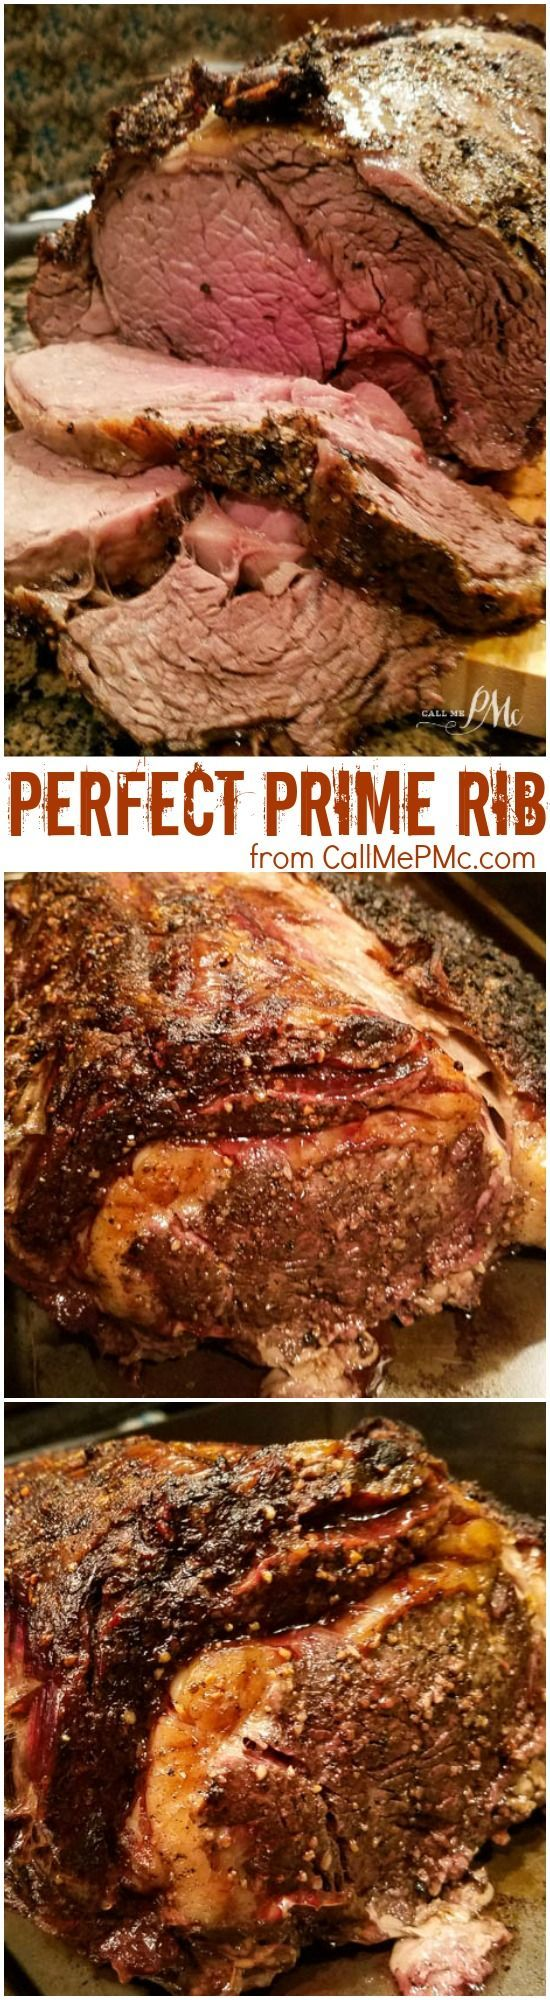 Perfect Prime Rib Medium Rare Oven Cooked recipe - Ideal for entertaining and holidays, Perfect Medium Rare Oven Roasted Prime Rib makes an impressive and elegant main course recipe. It's full of flavor, moist, and practically melts in your mouth!